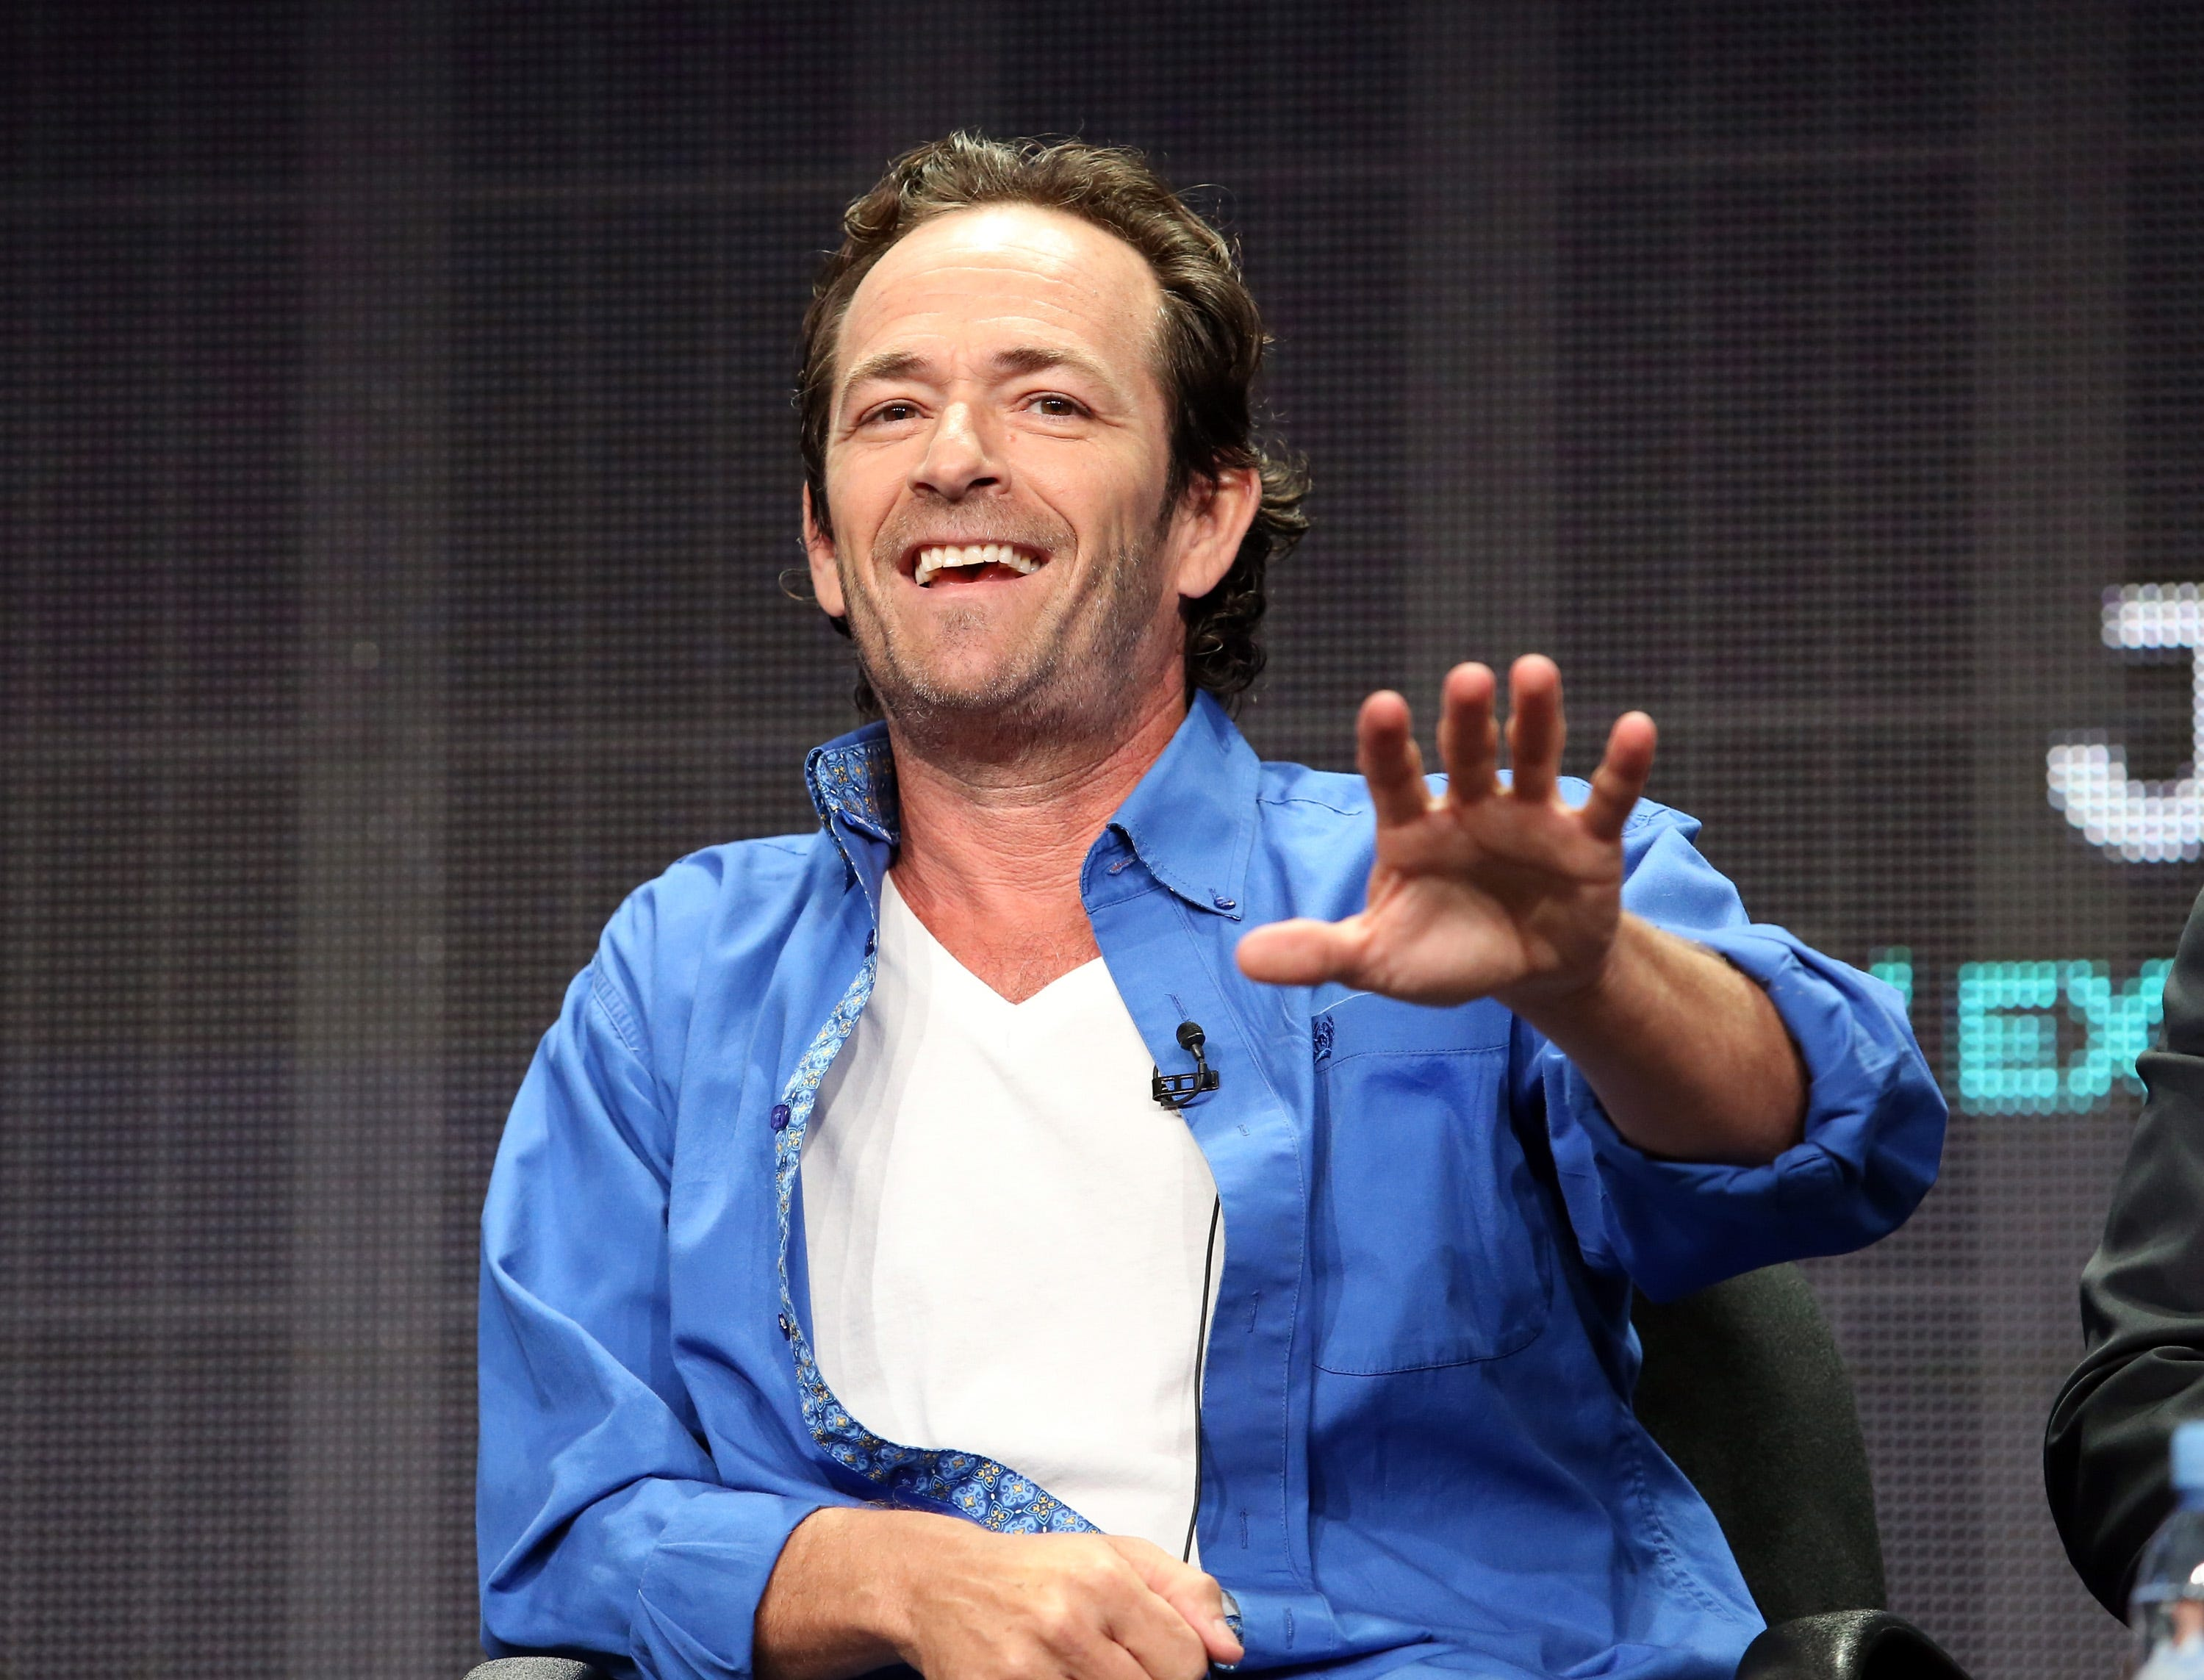 Executive producer/actor Luke Perry speaks onstage during the 'Welcome Home' panel discussion at the UP Entertainment portion of the 2015 Summer TCA Tour at The Beverly Hilton Hotel on July 30, 2015 in Beverly Hills, Calif.